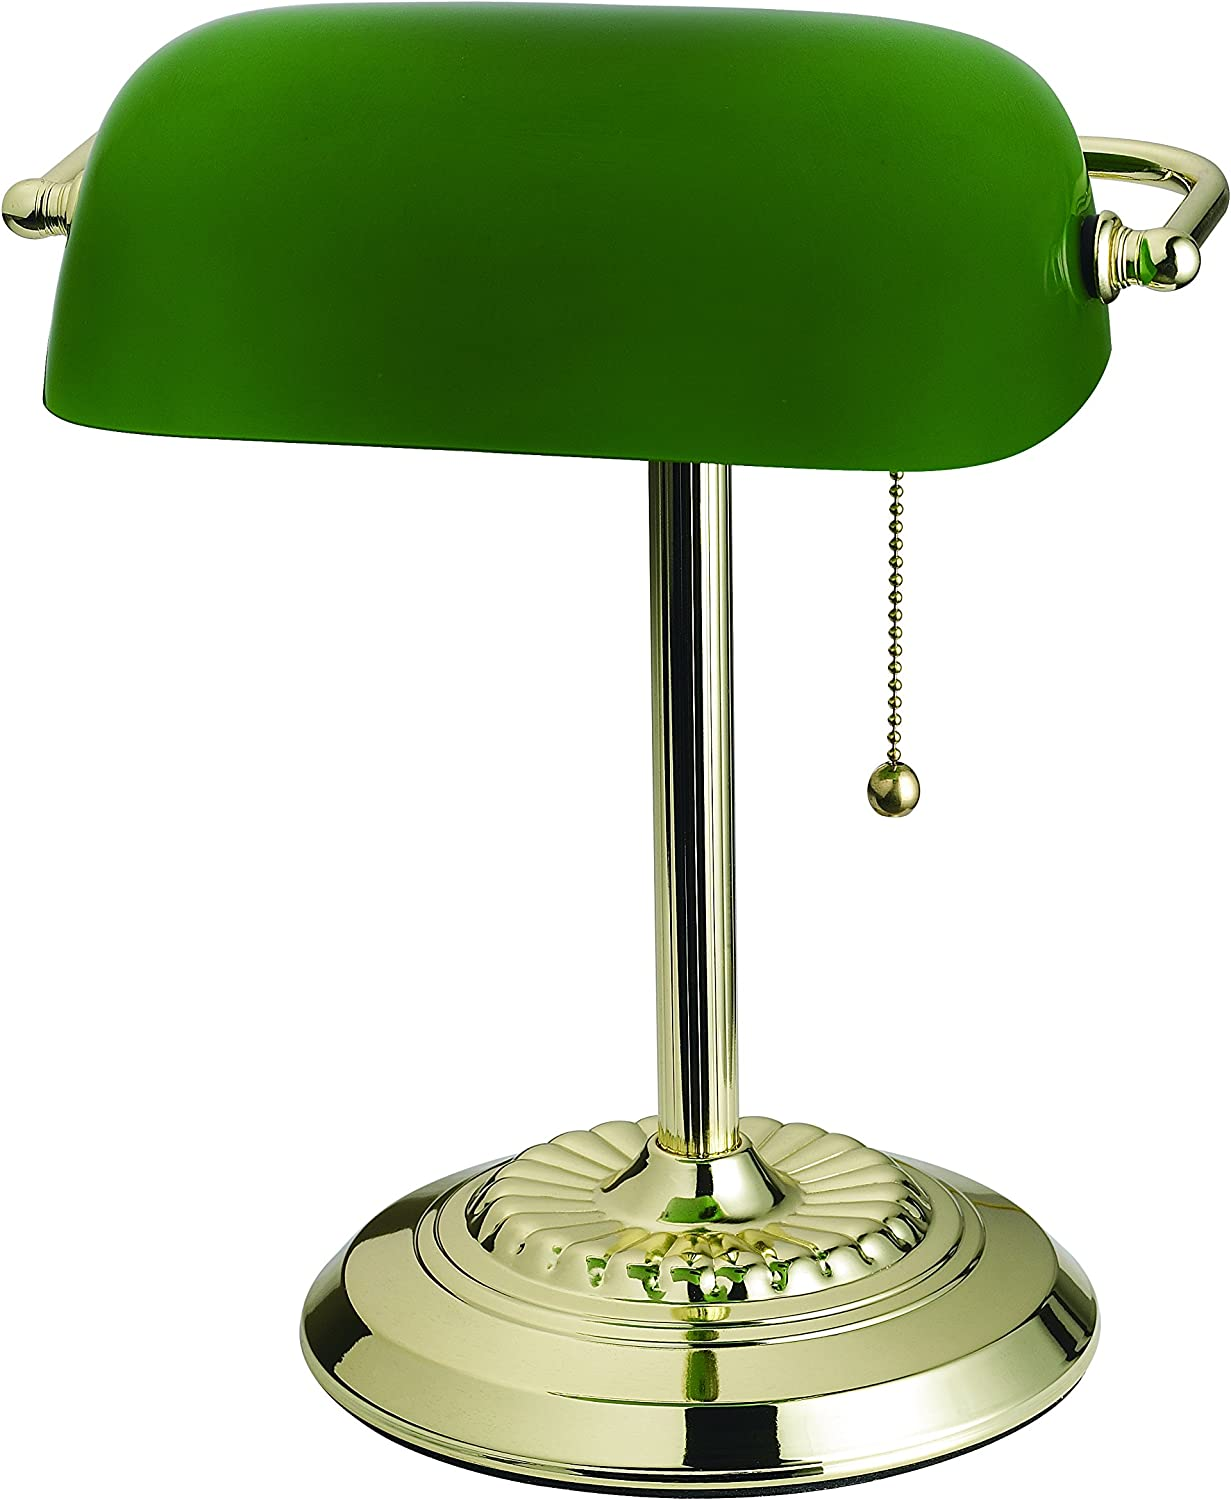 Catalina Lighting 17466-017 Franklin Banker s Lamp, Plated Brass with Adjustable Green Glass Shade, 14.5